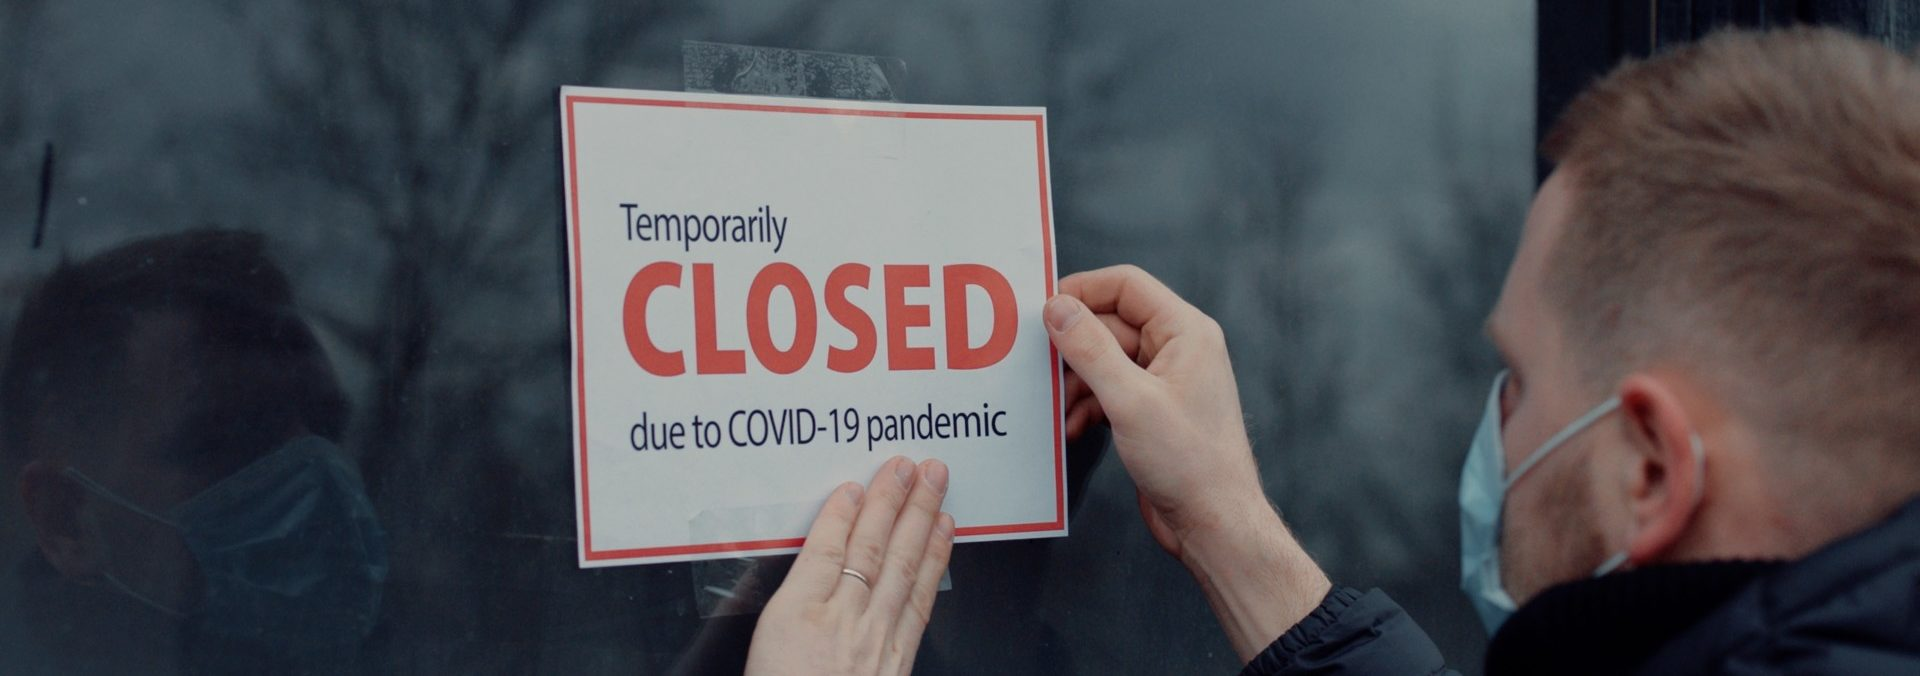 Caucasian male wearing medical mask puts a Temporary closed due COVID-19 pandemic sign on a window. Coronavirus pandemic, small business shutdown